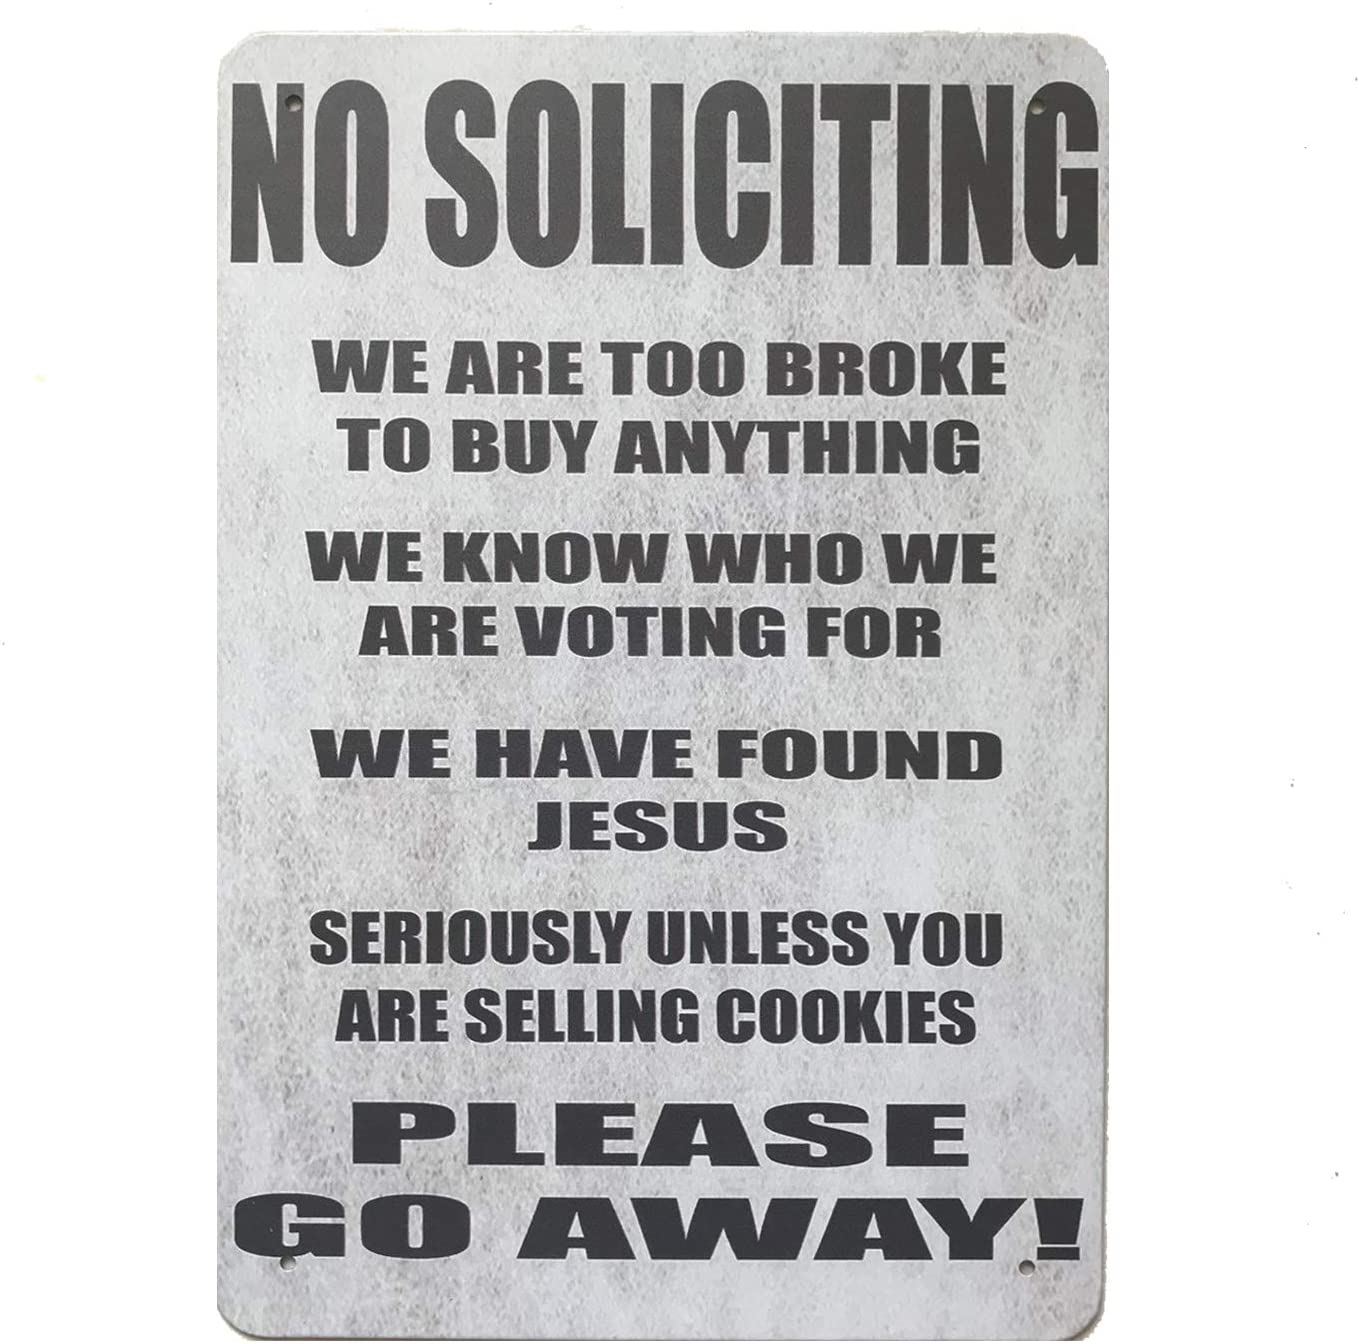 XUNXINYOUBI No Soliciting We are Too Broke to Buy Anything We Know Who We are Voting for We Have Found Jesus Seriously Unless You are Selling Cookies Please Go Away!Metal 8